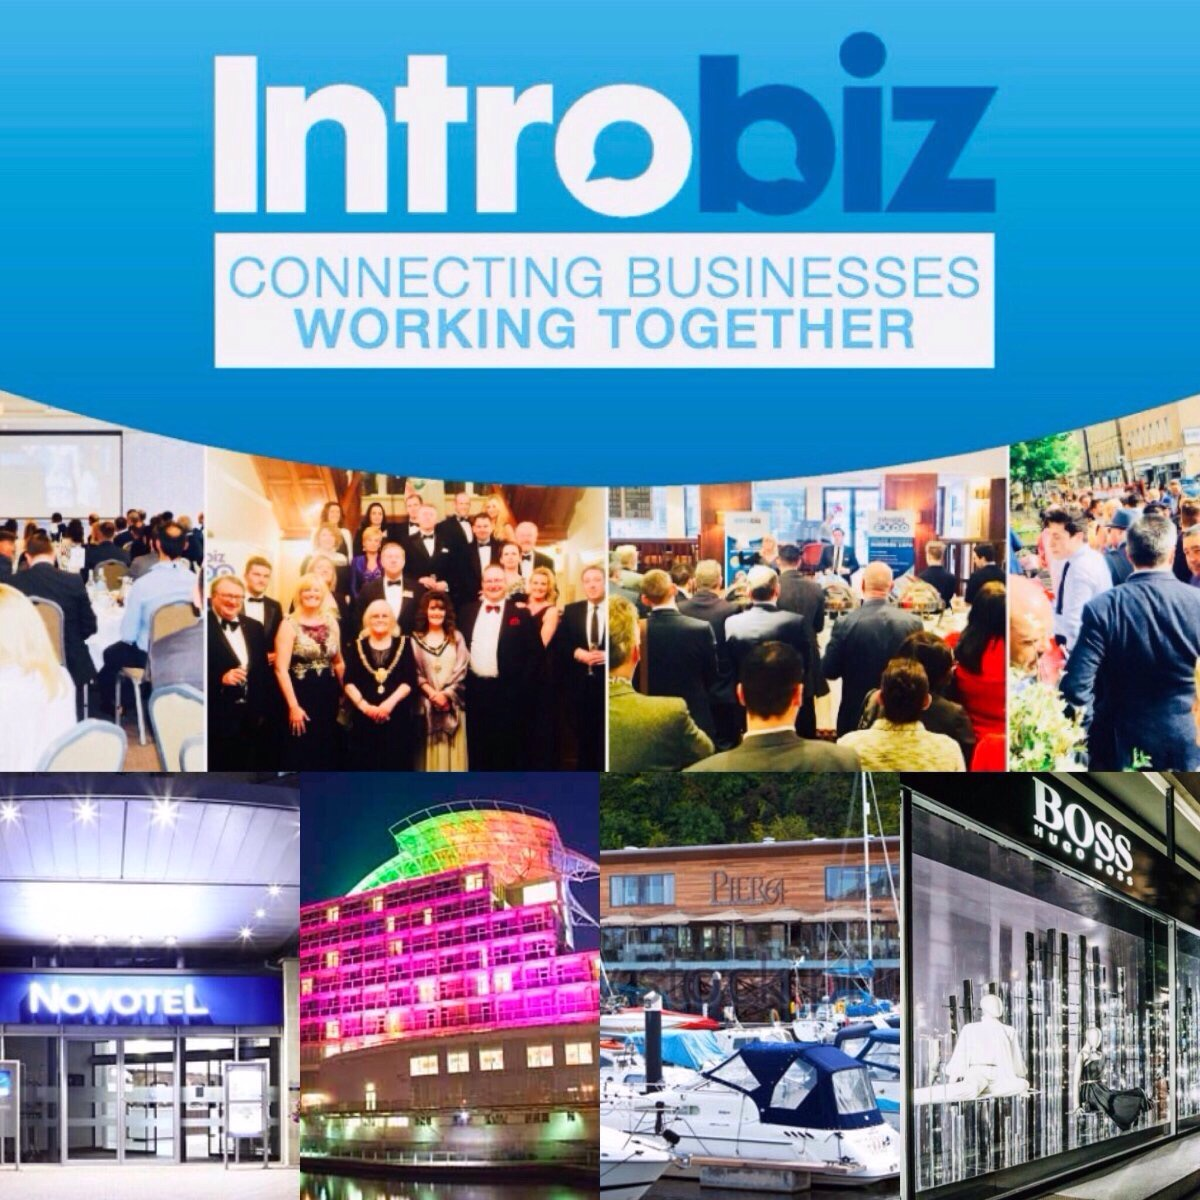 Business Networking Events for September in Penarth, Cardiff, Cardiff Bay, The Vale of Glamorgan, Llanelli and Swansea — Introbiz' Blog – Wales' Biggest Business Network & Expo